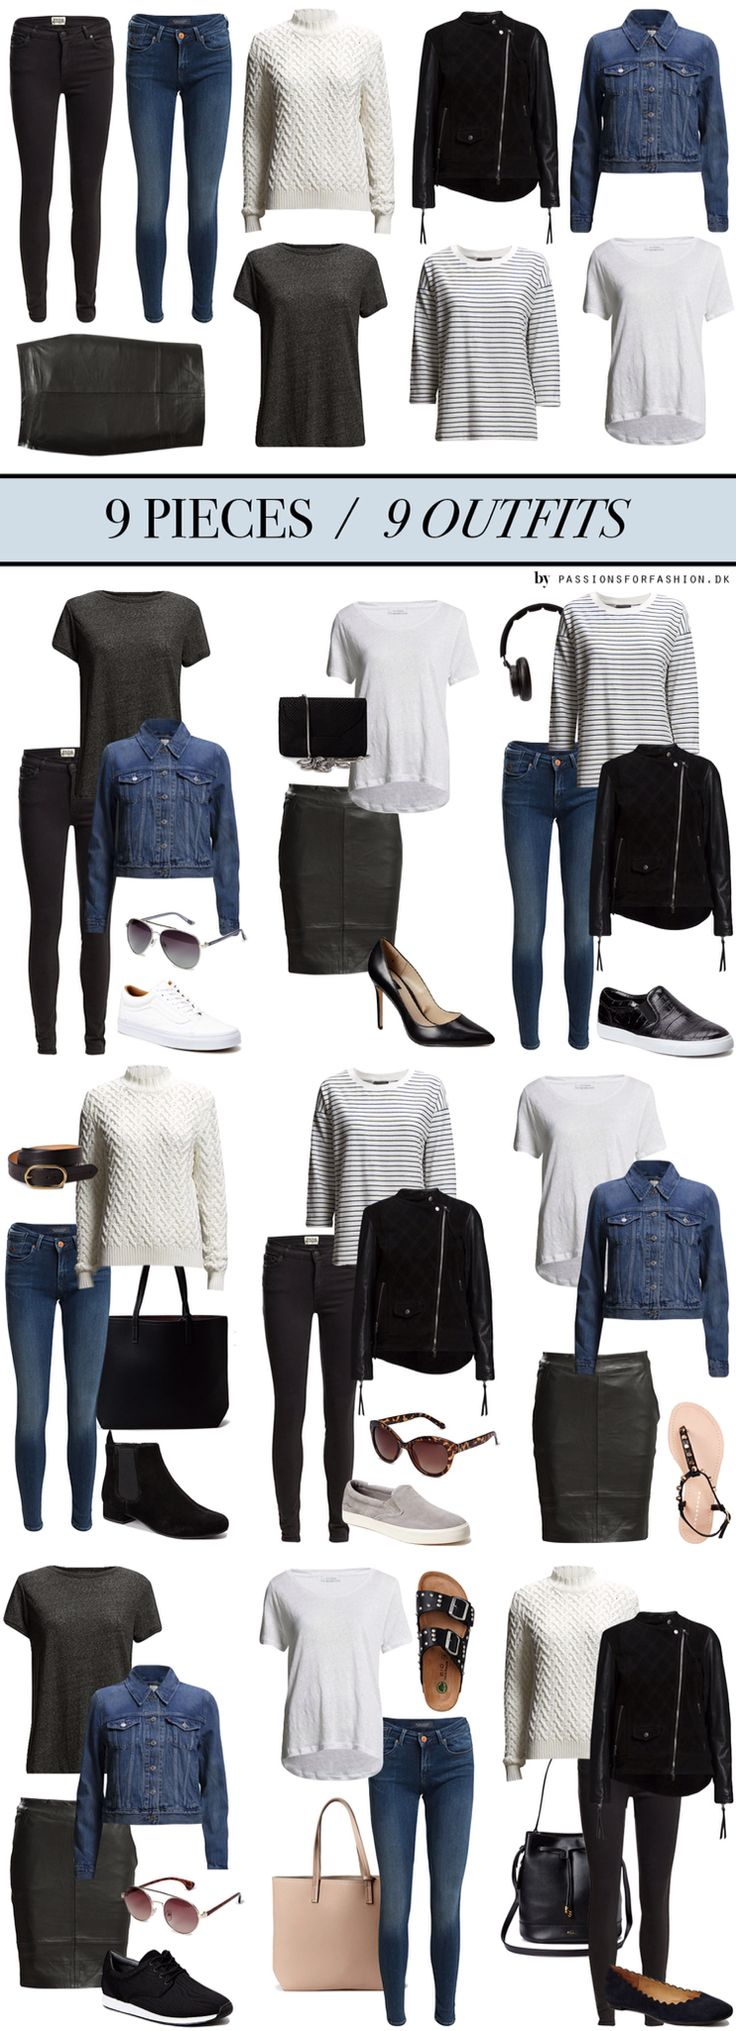 Best 25+ Outfit combinations ideas on Pinterest | Color combinations outfits Clothing color ...